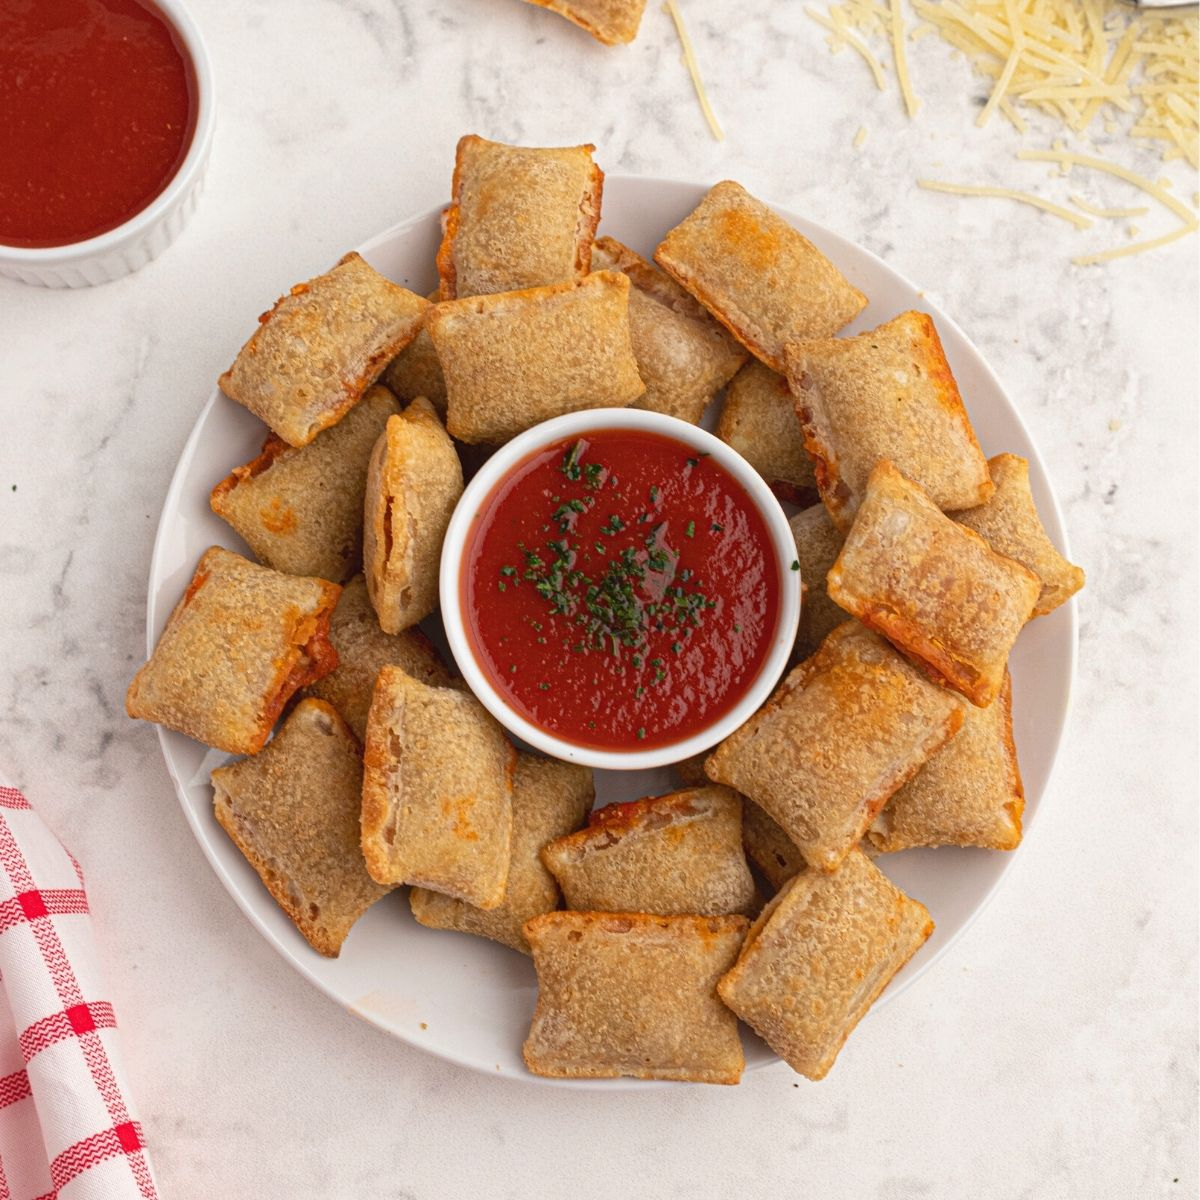 Cooked pizza rolls cooked and served on a white plate with shredded parmesan cheese and red dipping sauce.